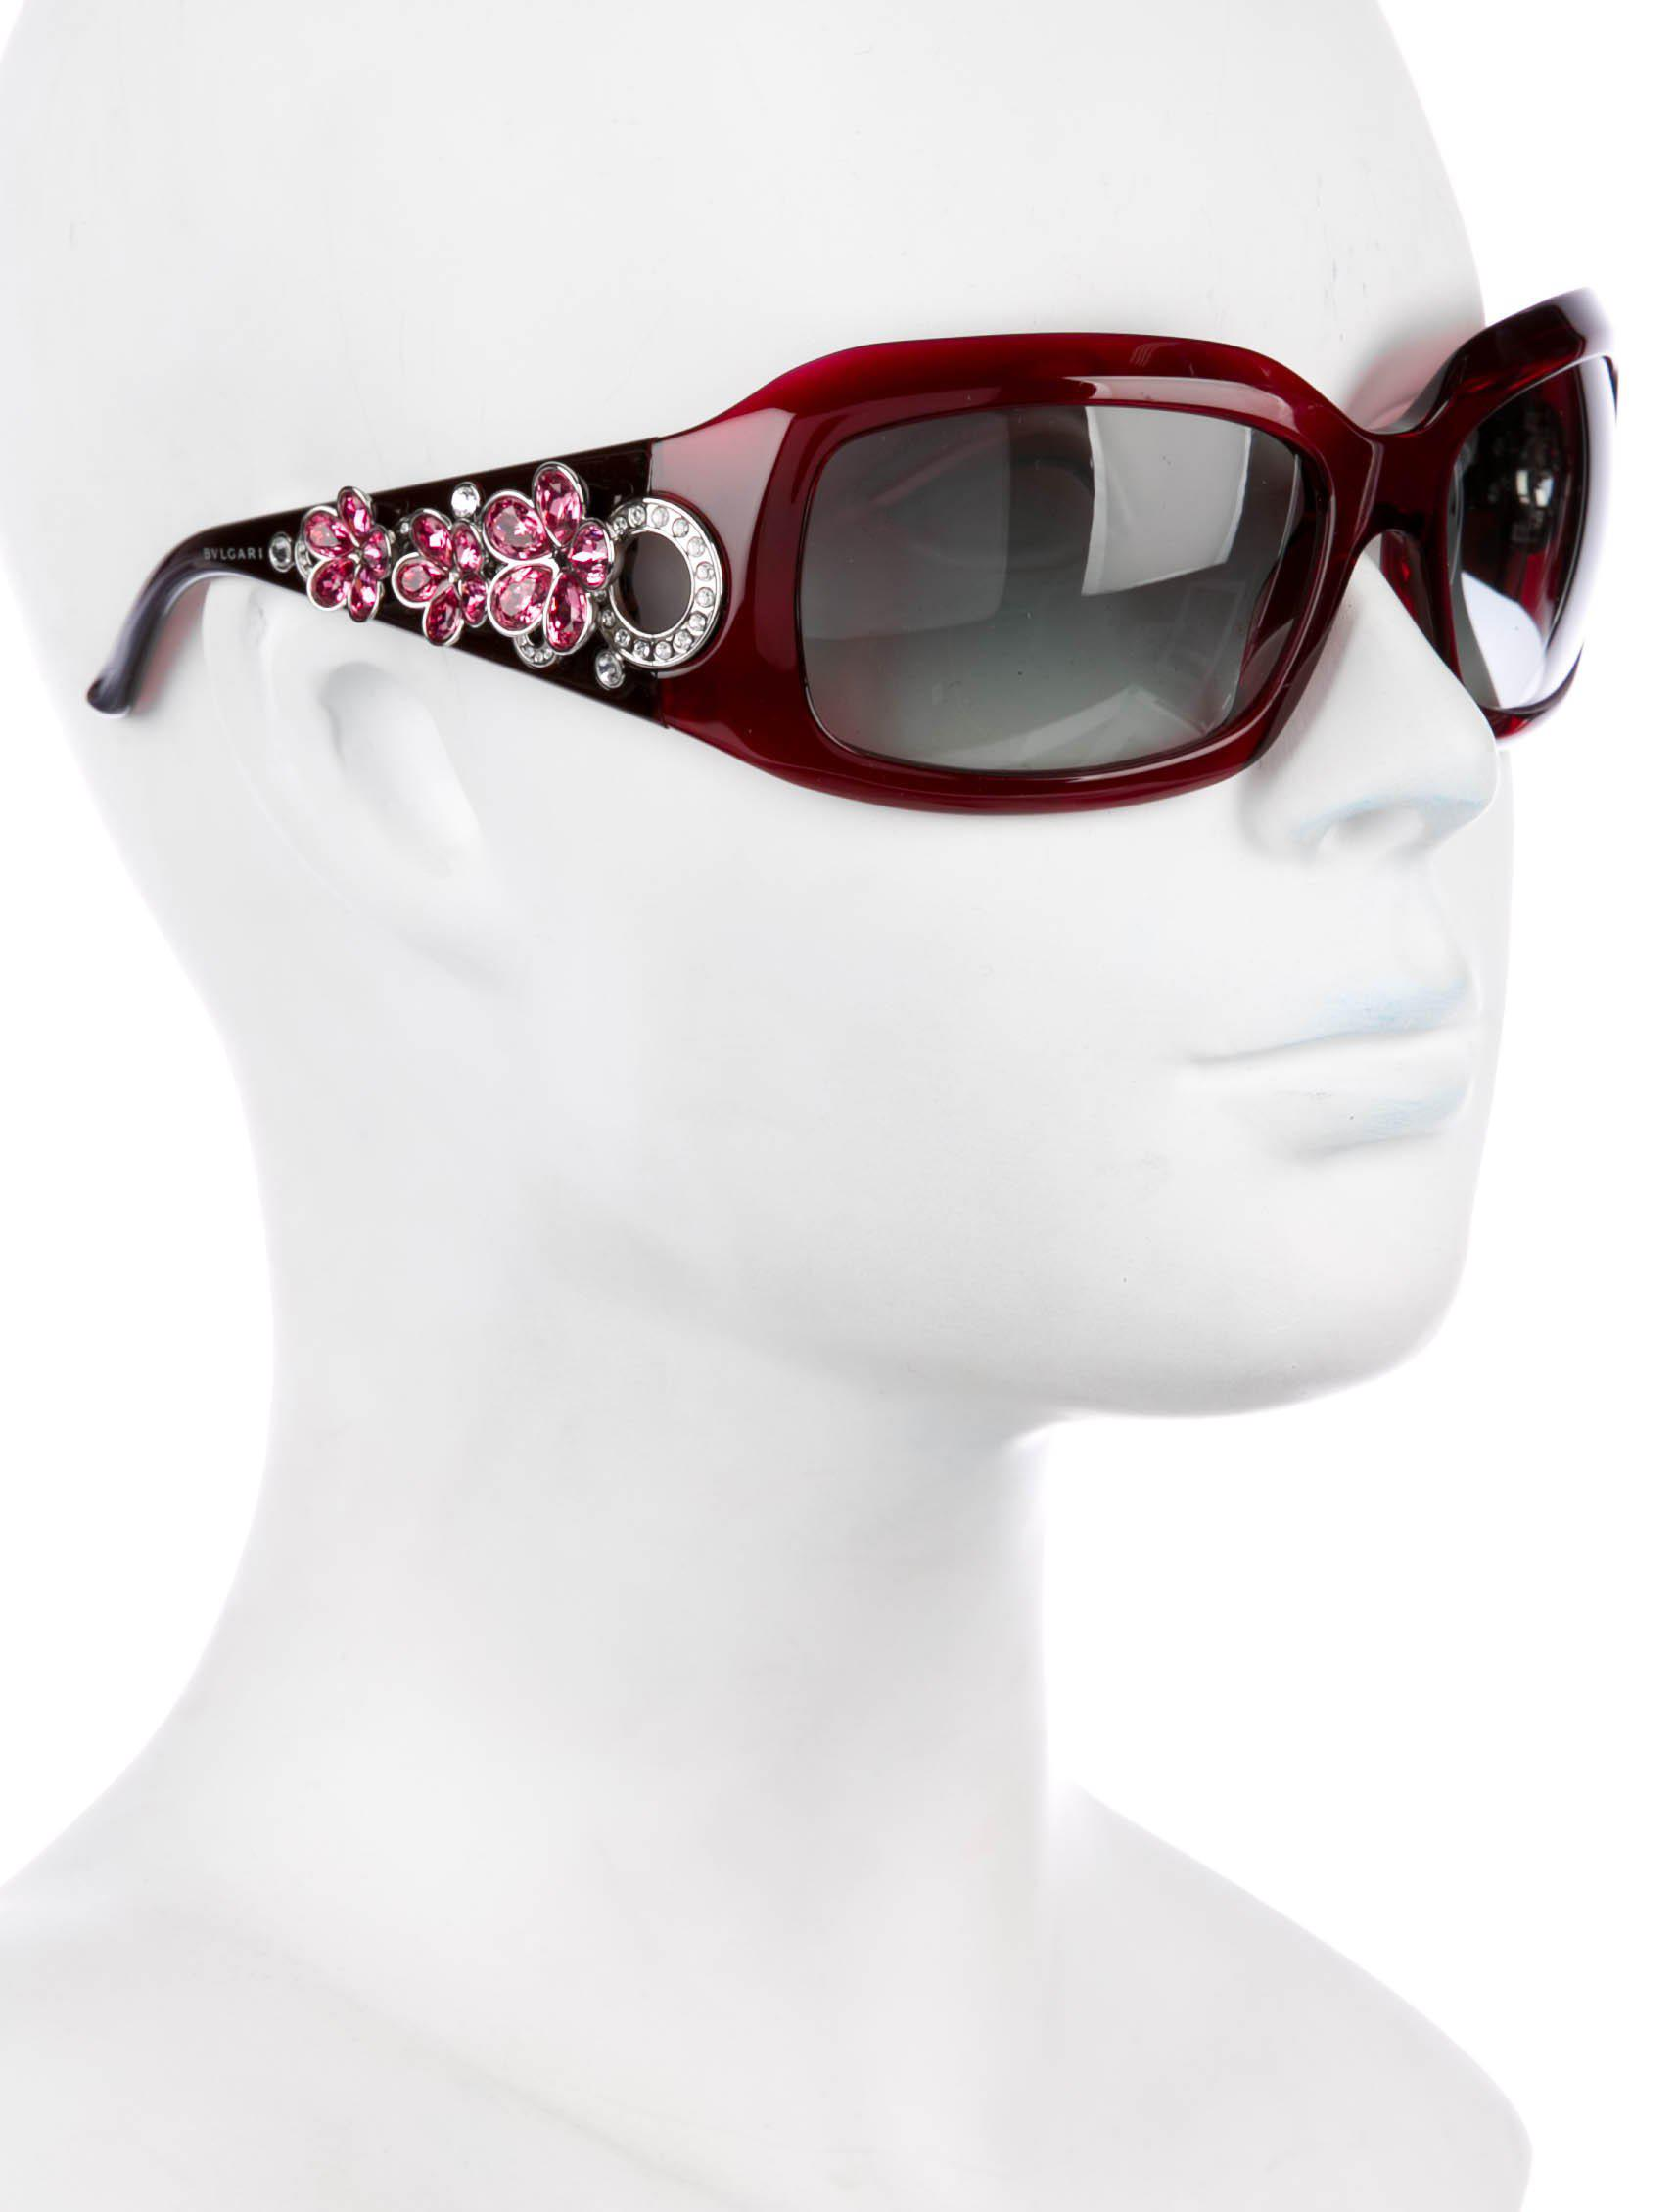 Lyst - Bvlgari Crystal Flower Sunglasses in Pink